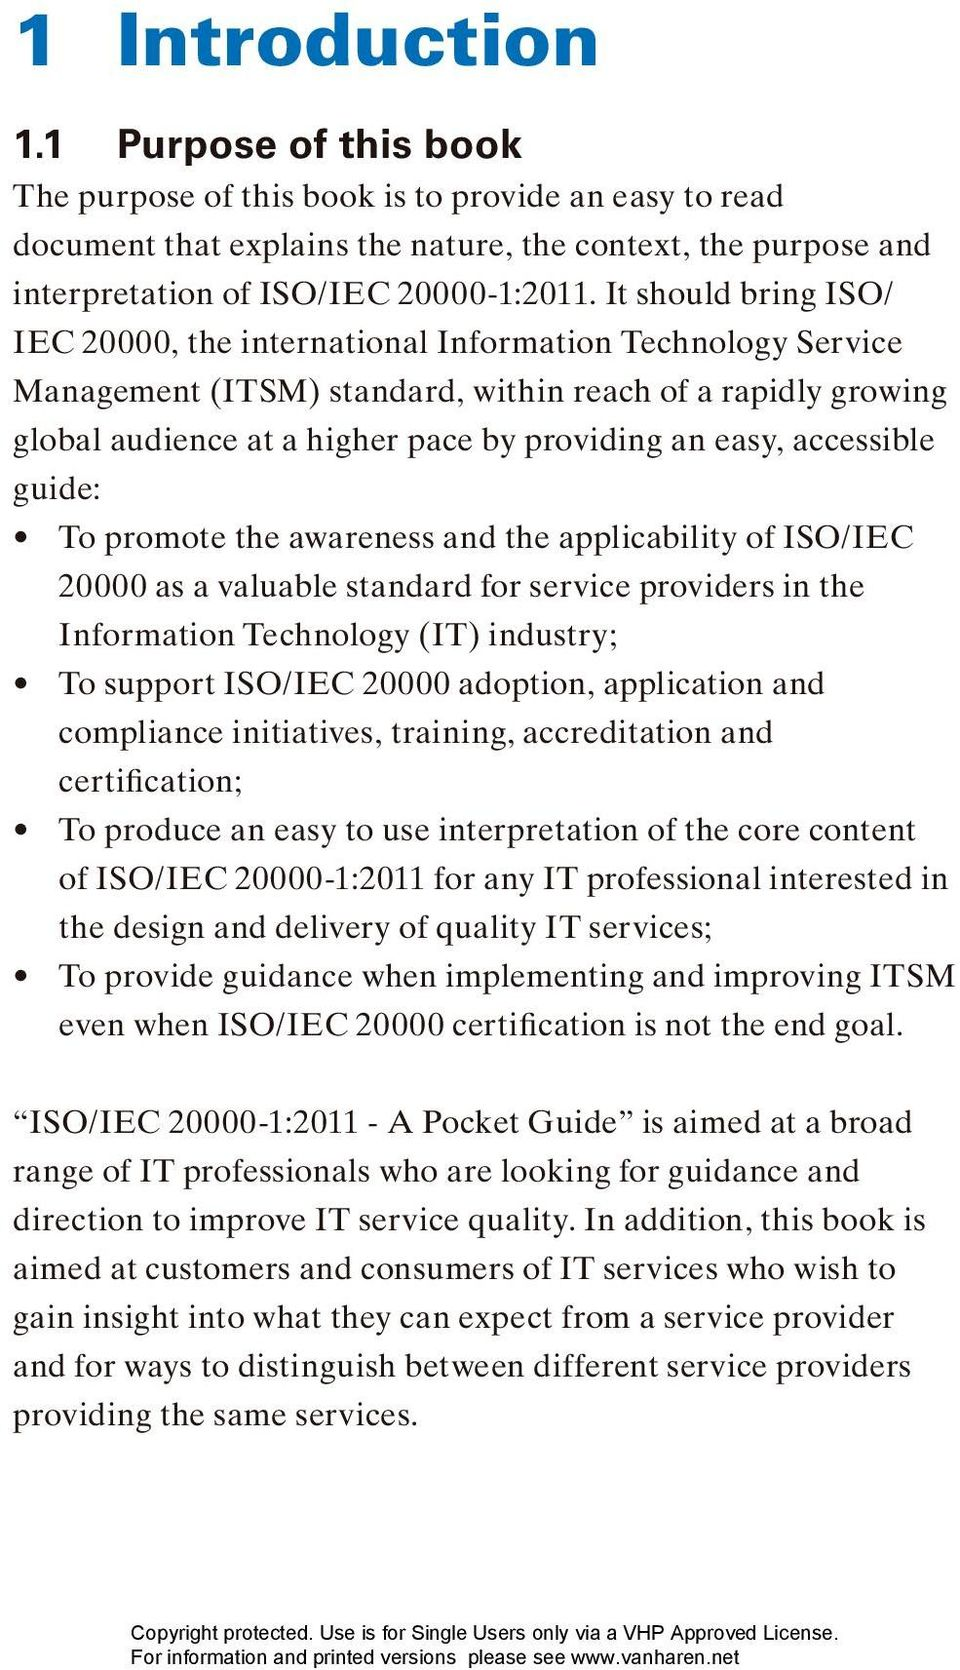 accessible guide: To promote the awareness and the applicability of ISO/IEC 20000 as a valuable standard for service providers in the Information Technology (IT) industry; To support ISO/IEC 20000